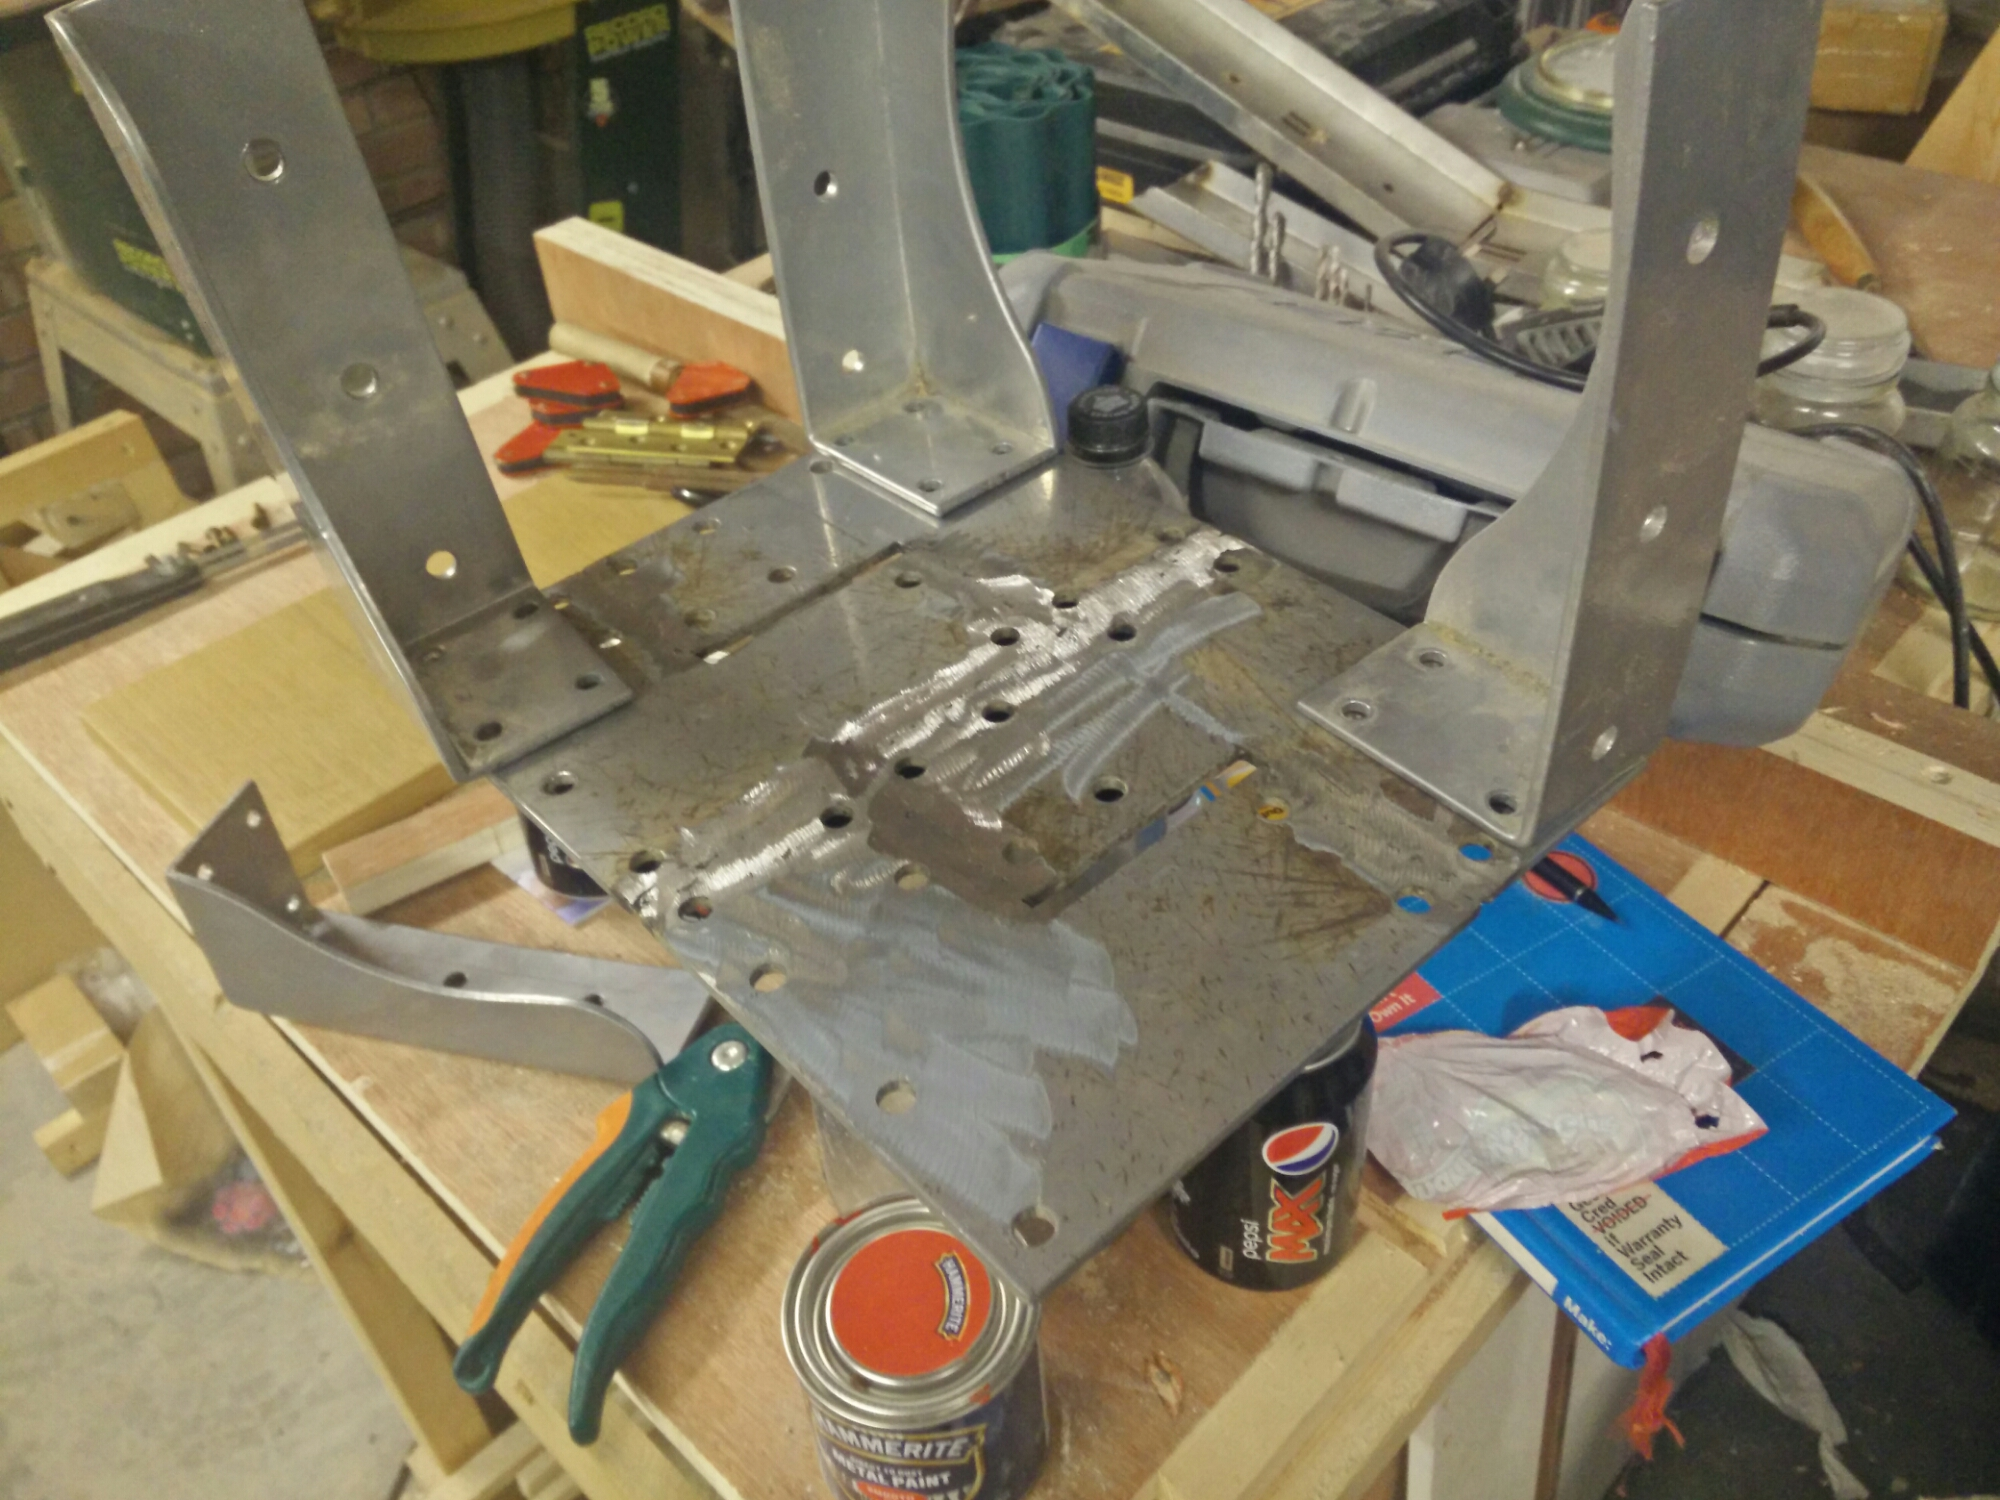 Laying out pieces of metal stool